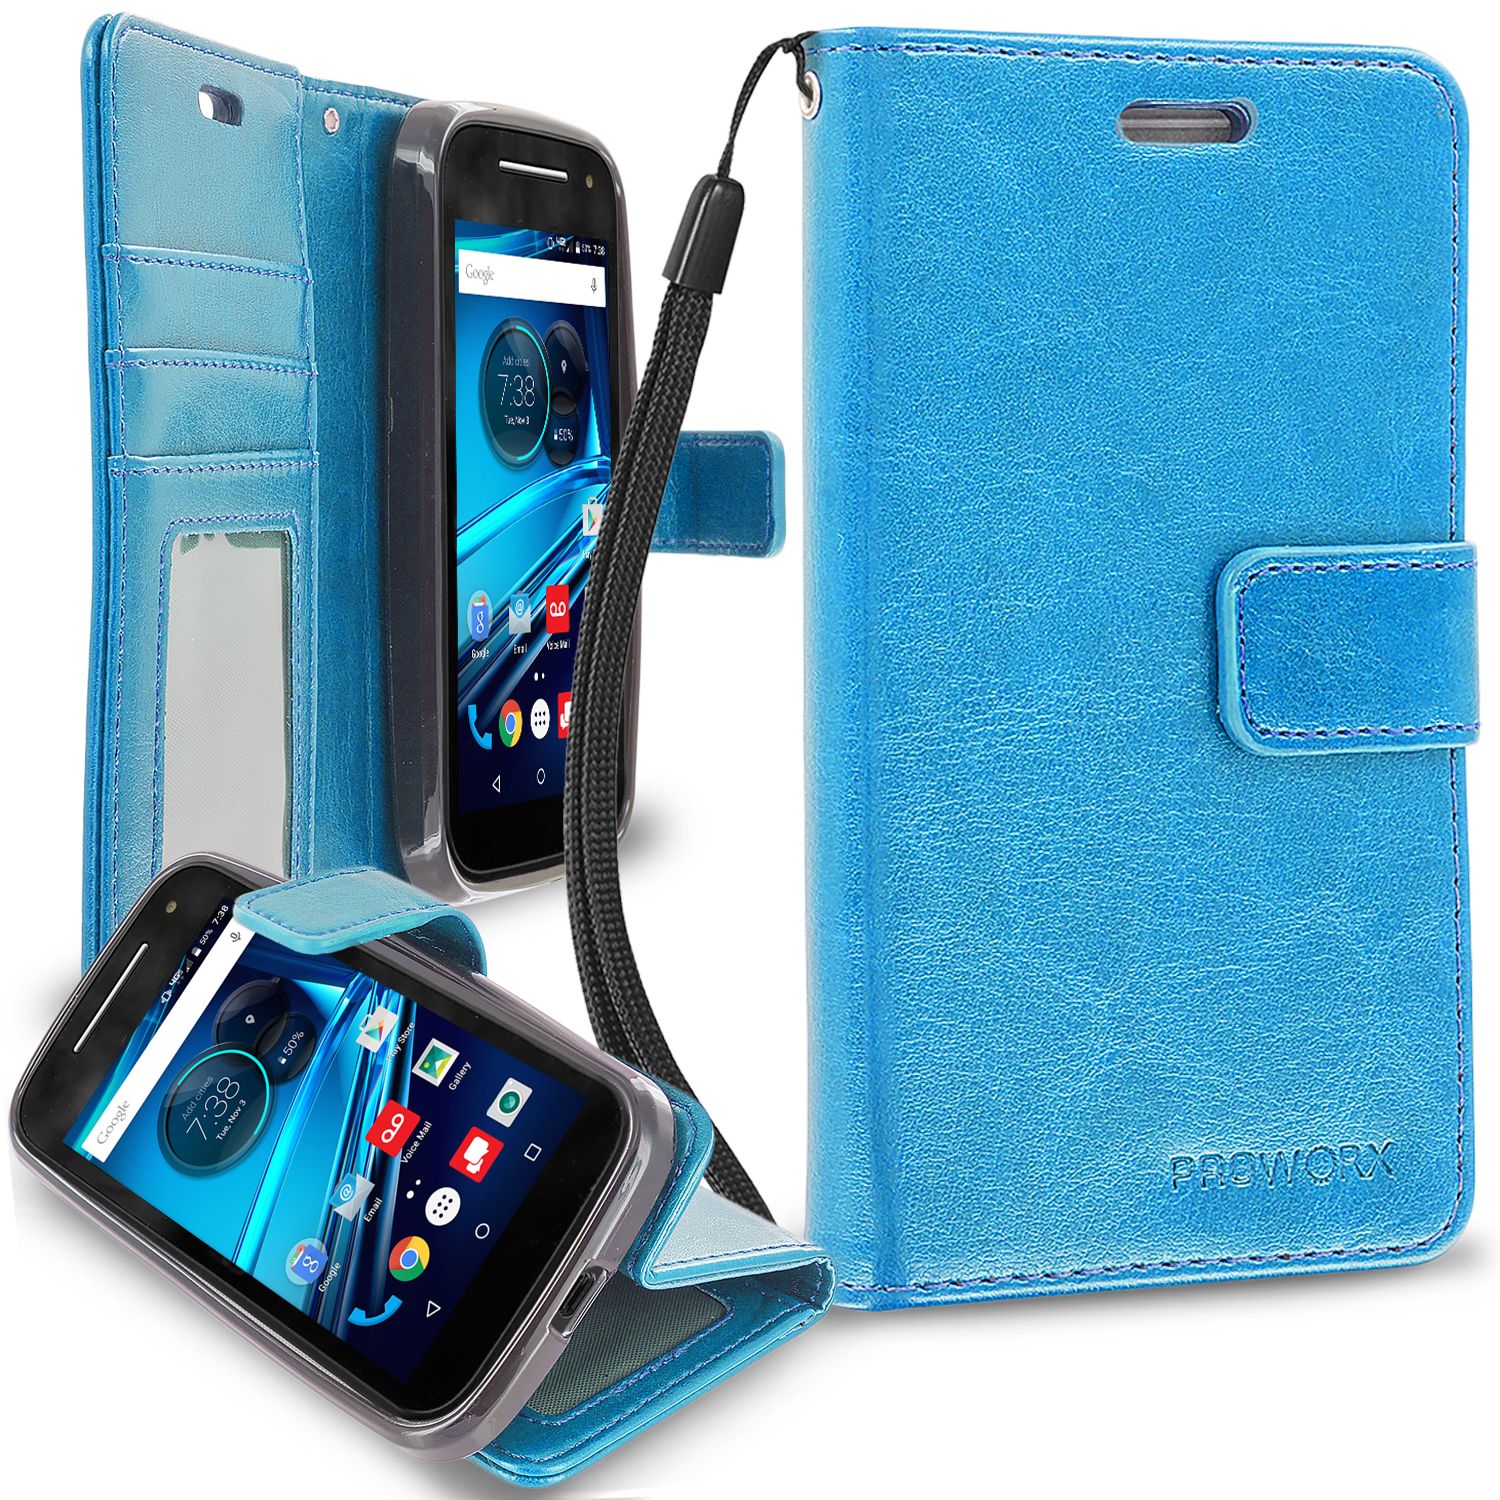 Motorola Moto E LTE 2nd Generation Baby Blue ProWorx Wallet Case Luxury PU Leather Case Cover With Card Slots & Stand